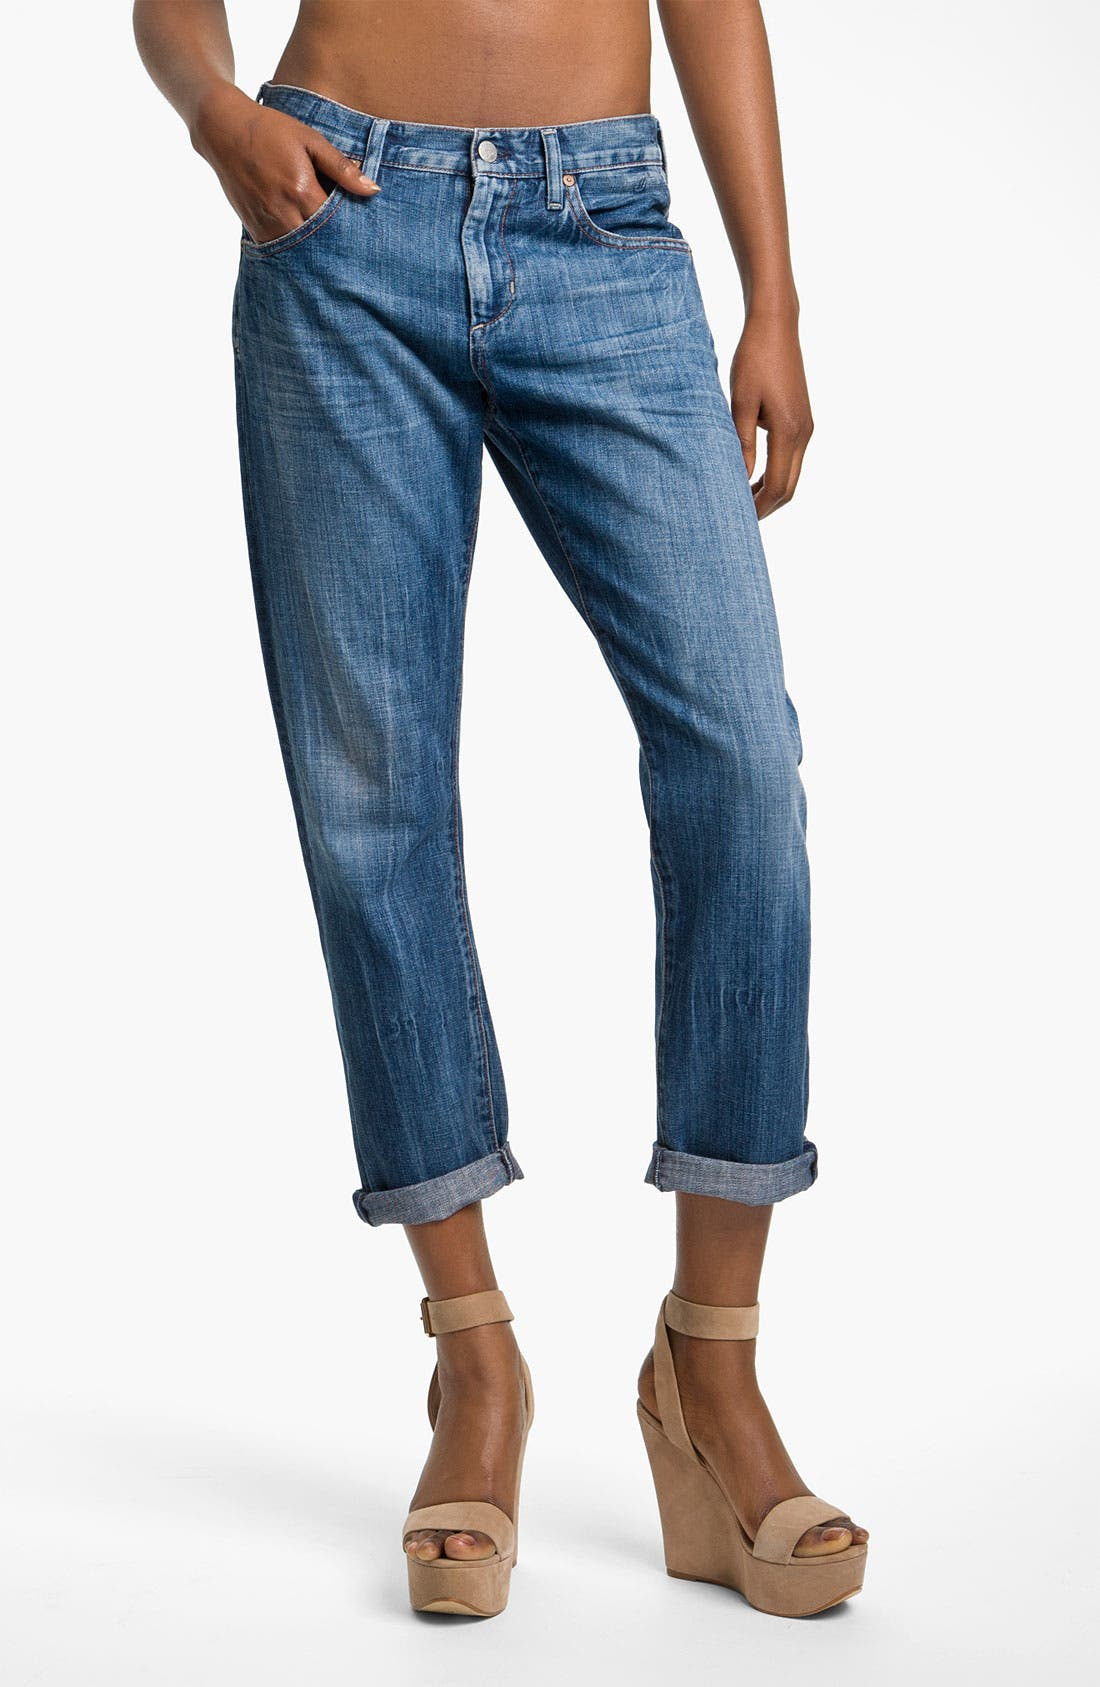 Alternate Image 1 Selected - Citizens of Humanity 'Daisy' Crop Loose Fit Jeans (Plunge)